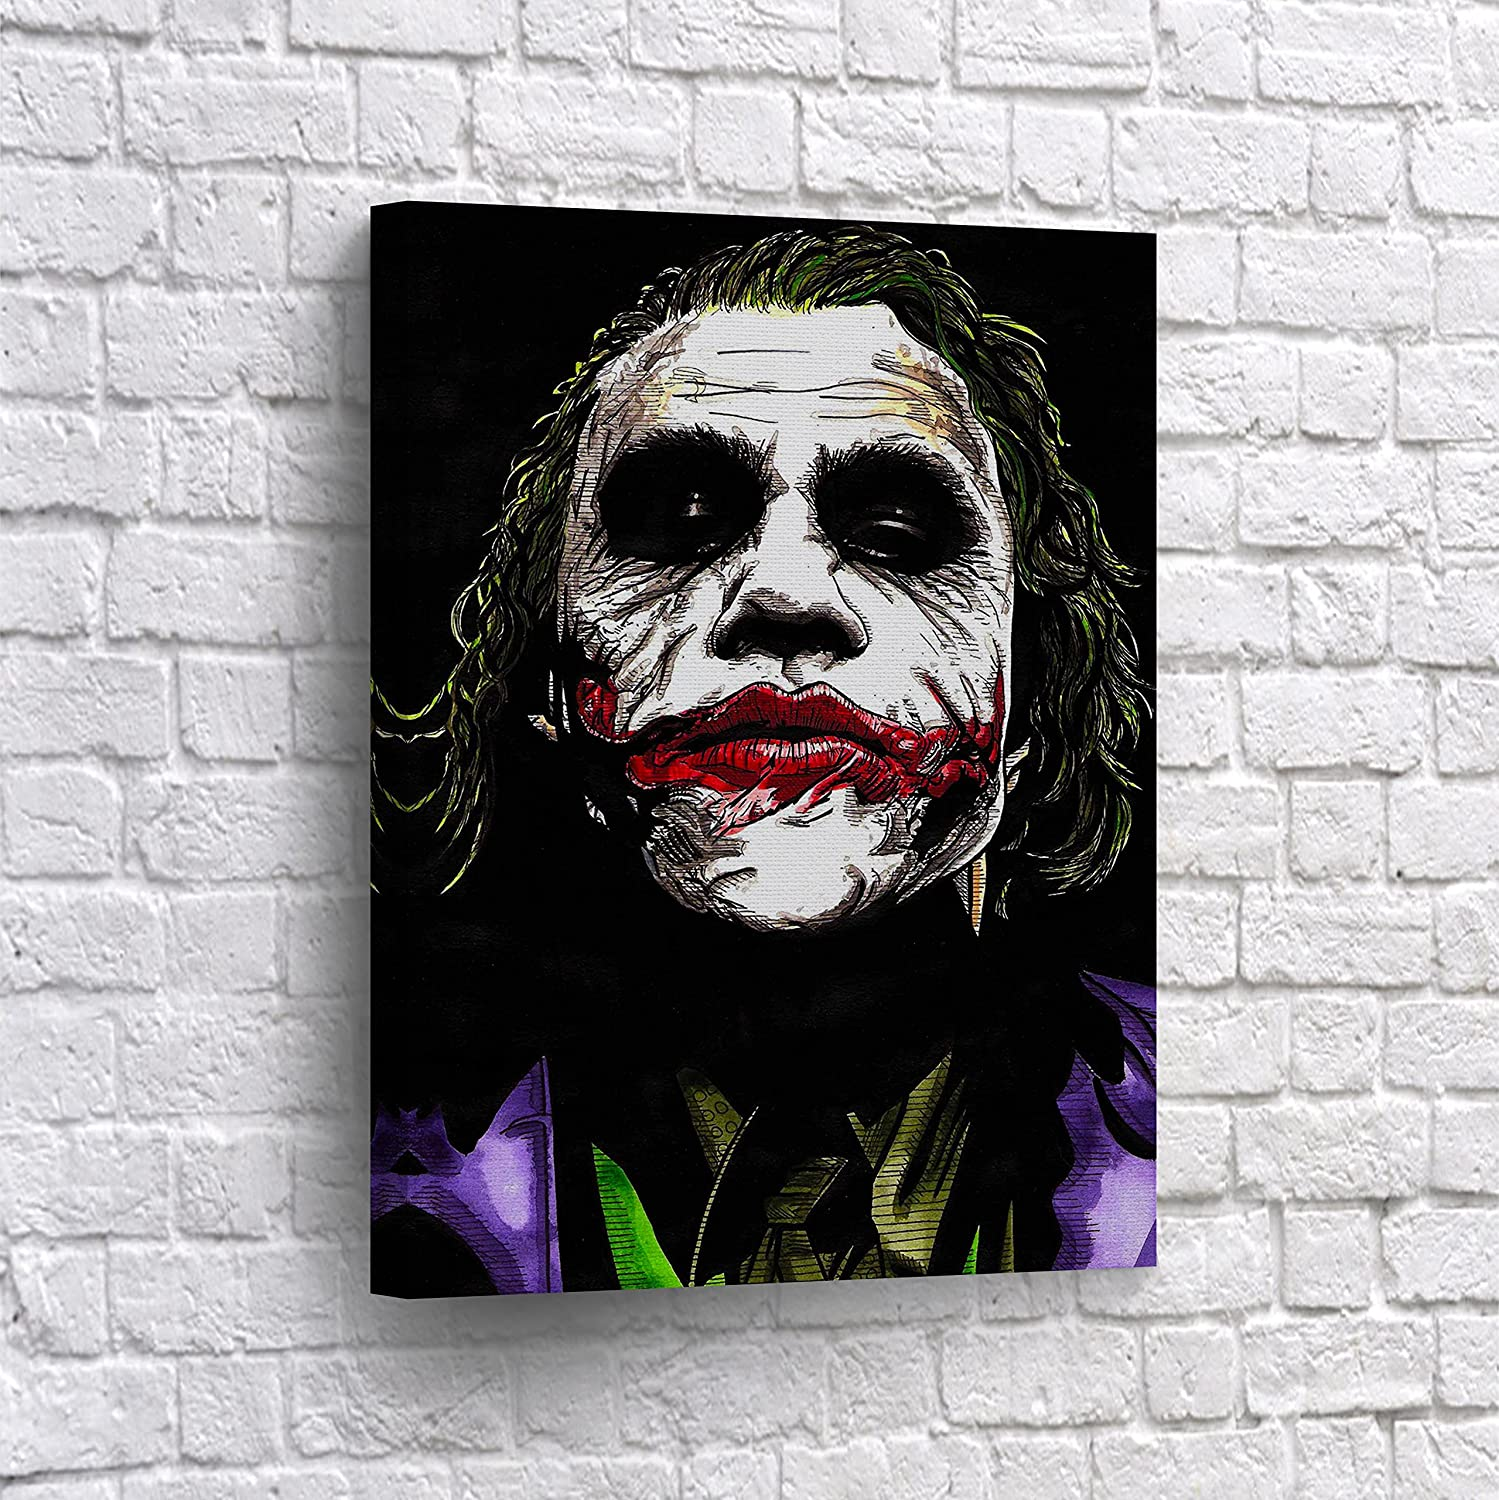 The Joker Heath Ledger Drawing Vector Paint Canvas Print Wall Art Decorative Home Decor Poster Artwork Framed And Stretched Ready To Hang 100